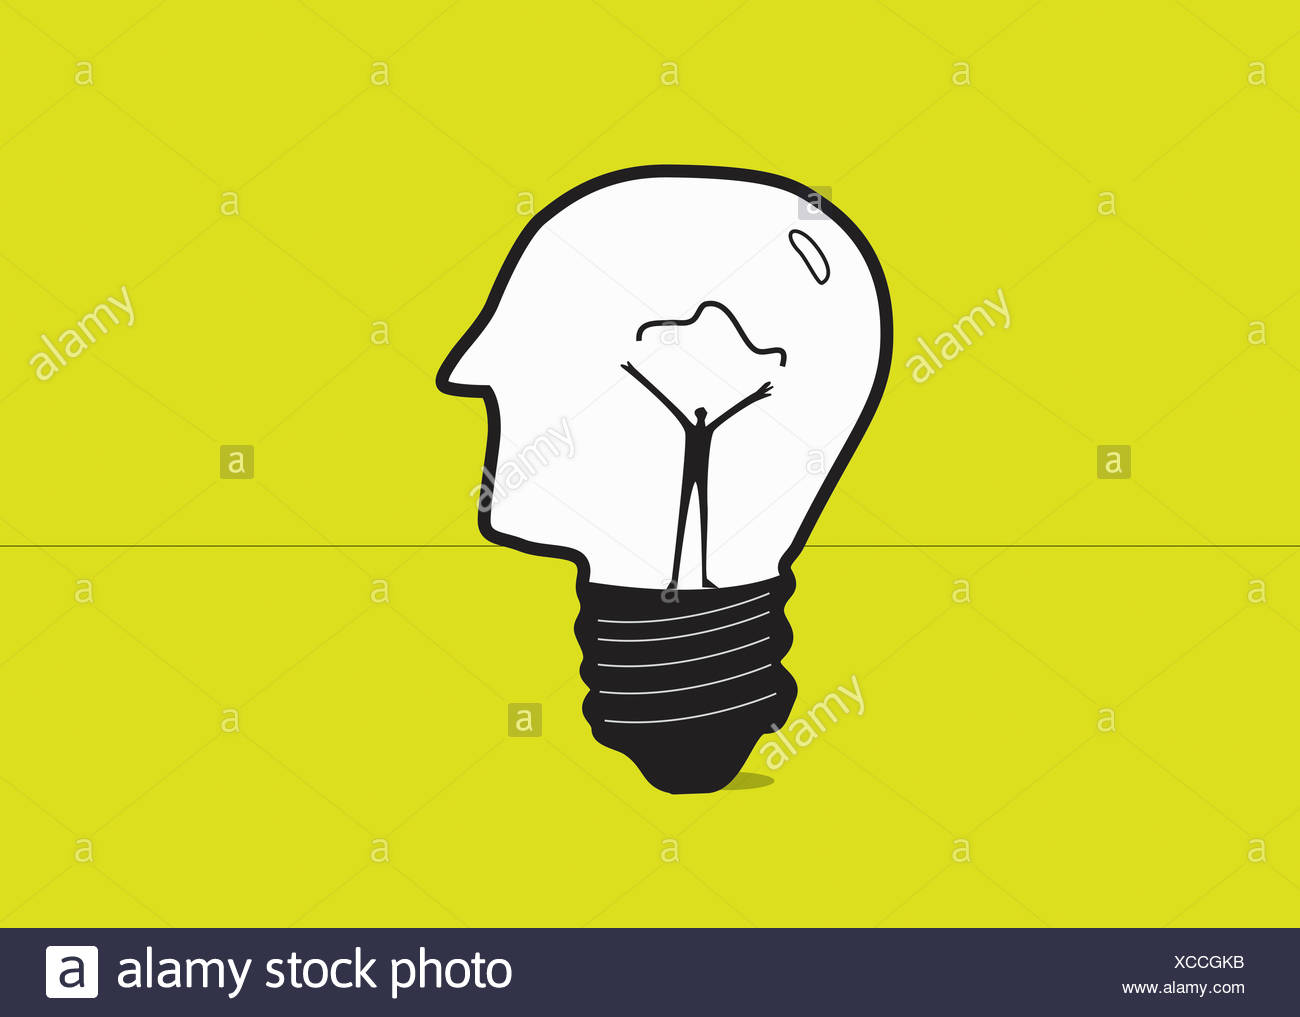 Man forming electric filament inside of human head light bulb - Stock Image